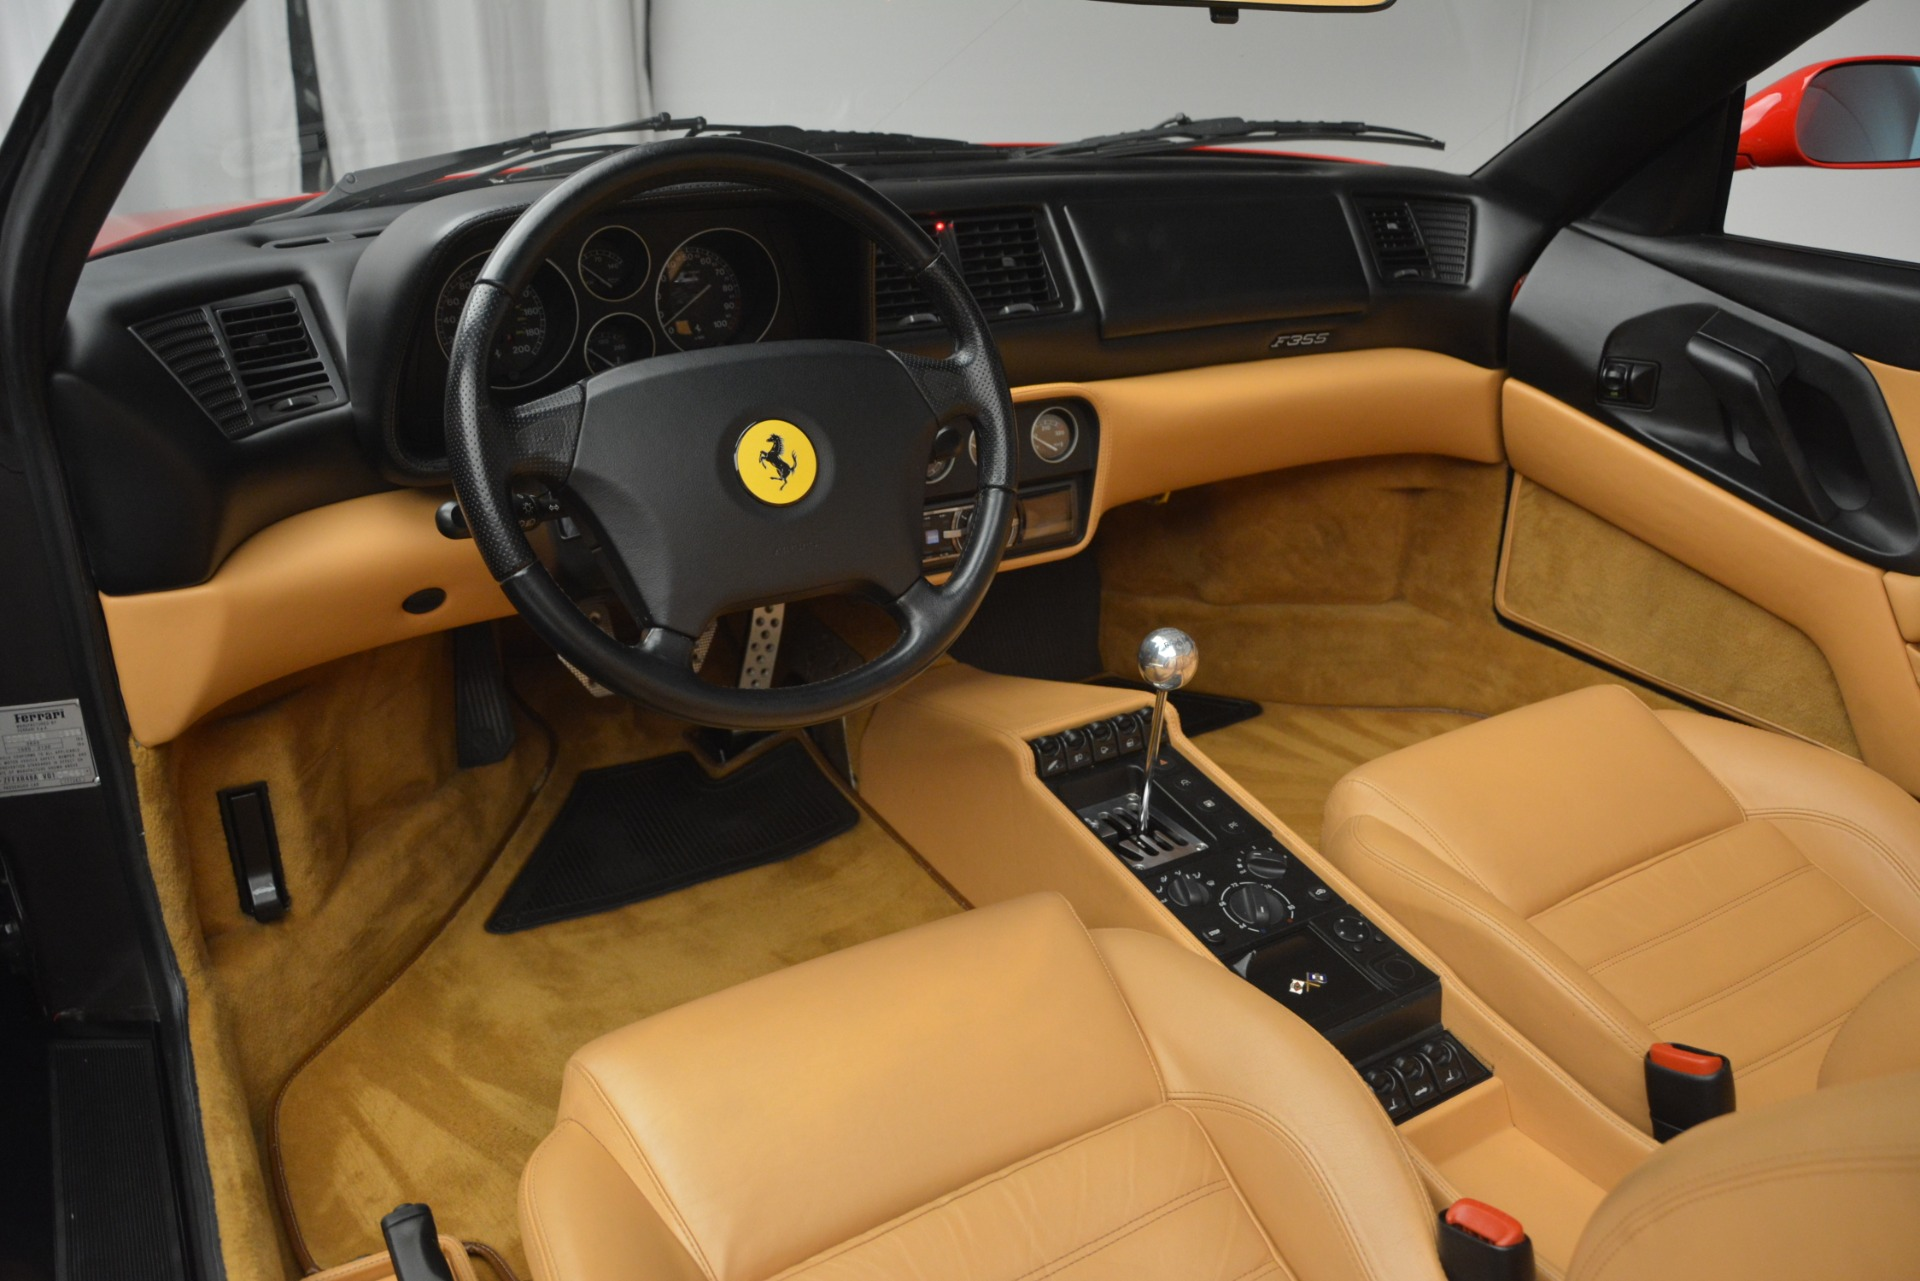 Used 1997 Ferrari 355 Spider 6-Speed Manual For Sale In Greenwich, CT 2735_p28